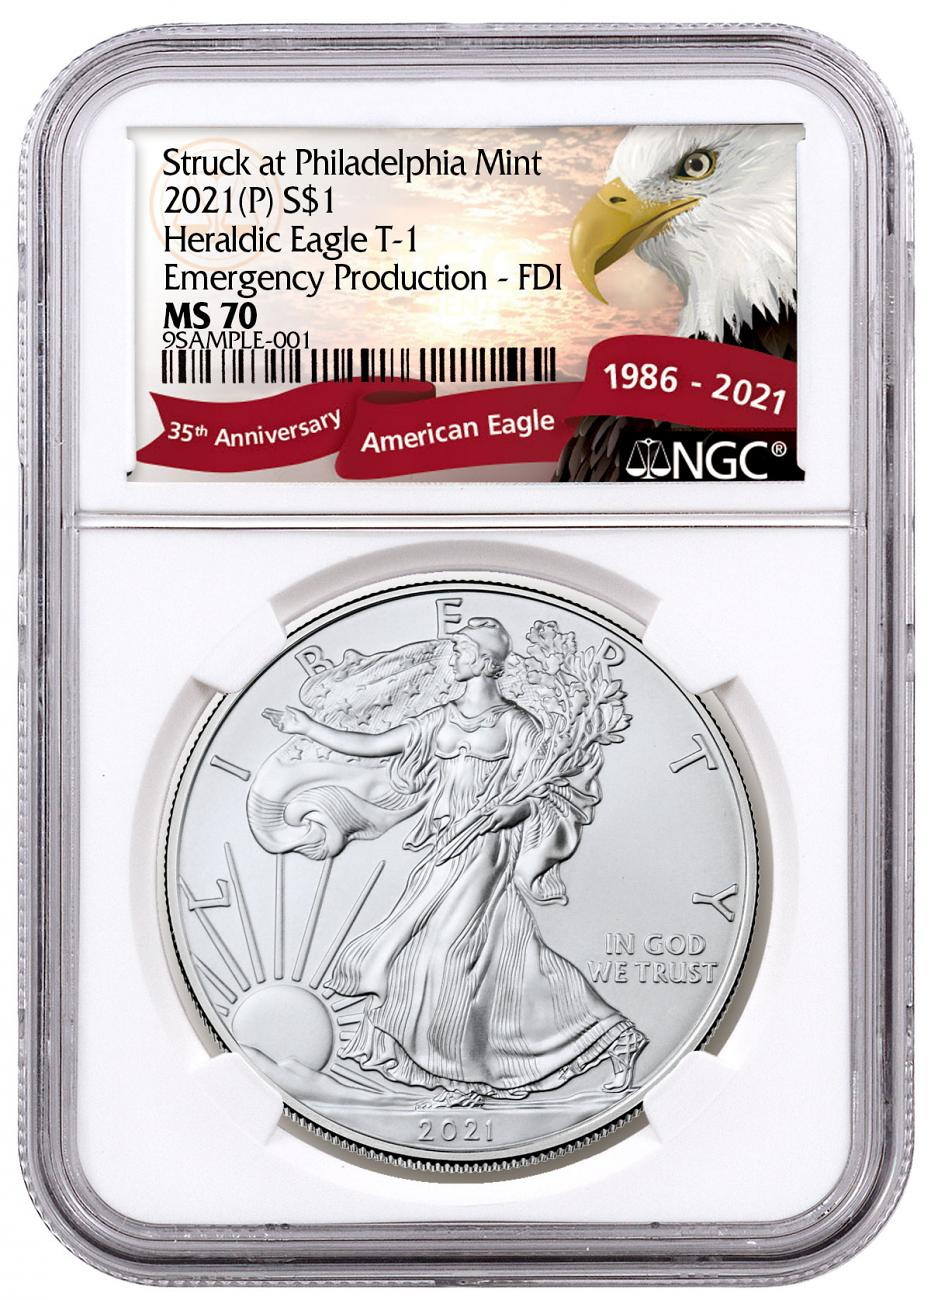 2021-(P) American Silver Eagle Struck at Philadelphia Mint - Emergency Production T-1 NGC MS70 FDI Exclusive Eagle Label